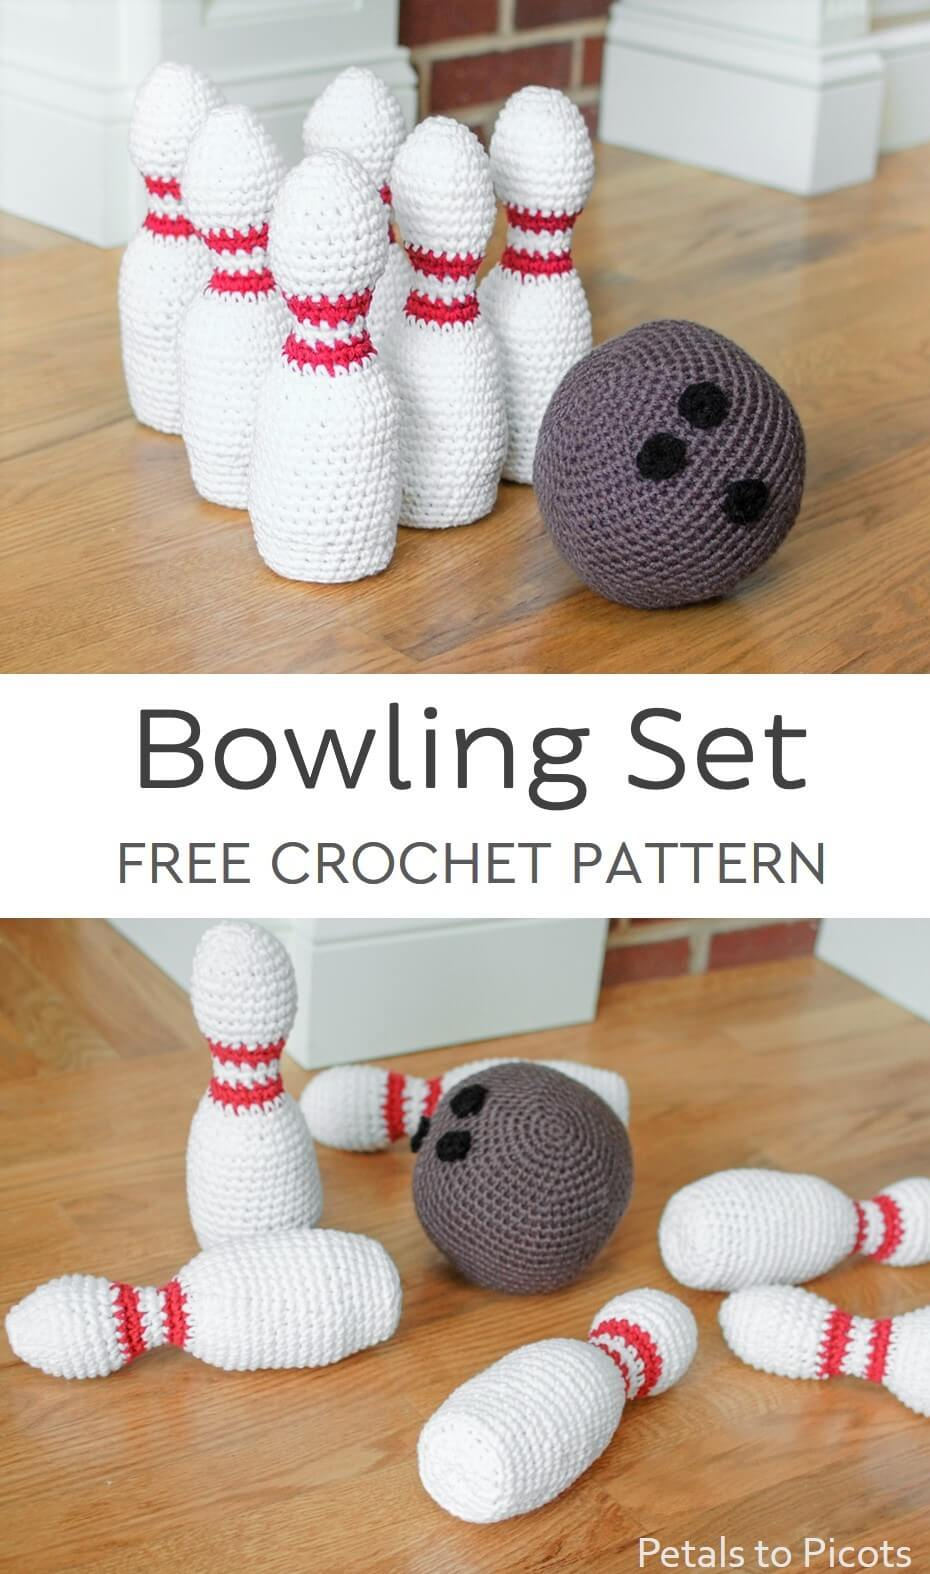 Little ones will love this adorable crochet bowling set! It\'s perfect for little hands and great for developing hand-eye coordination and spacial awareness.